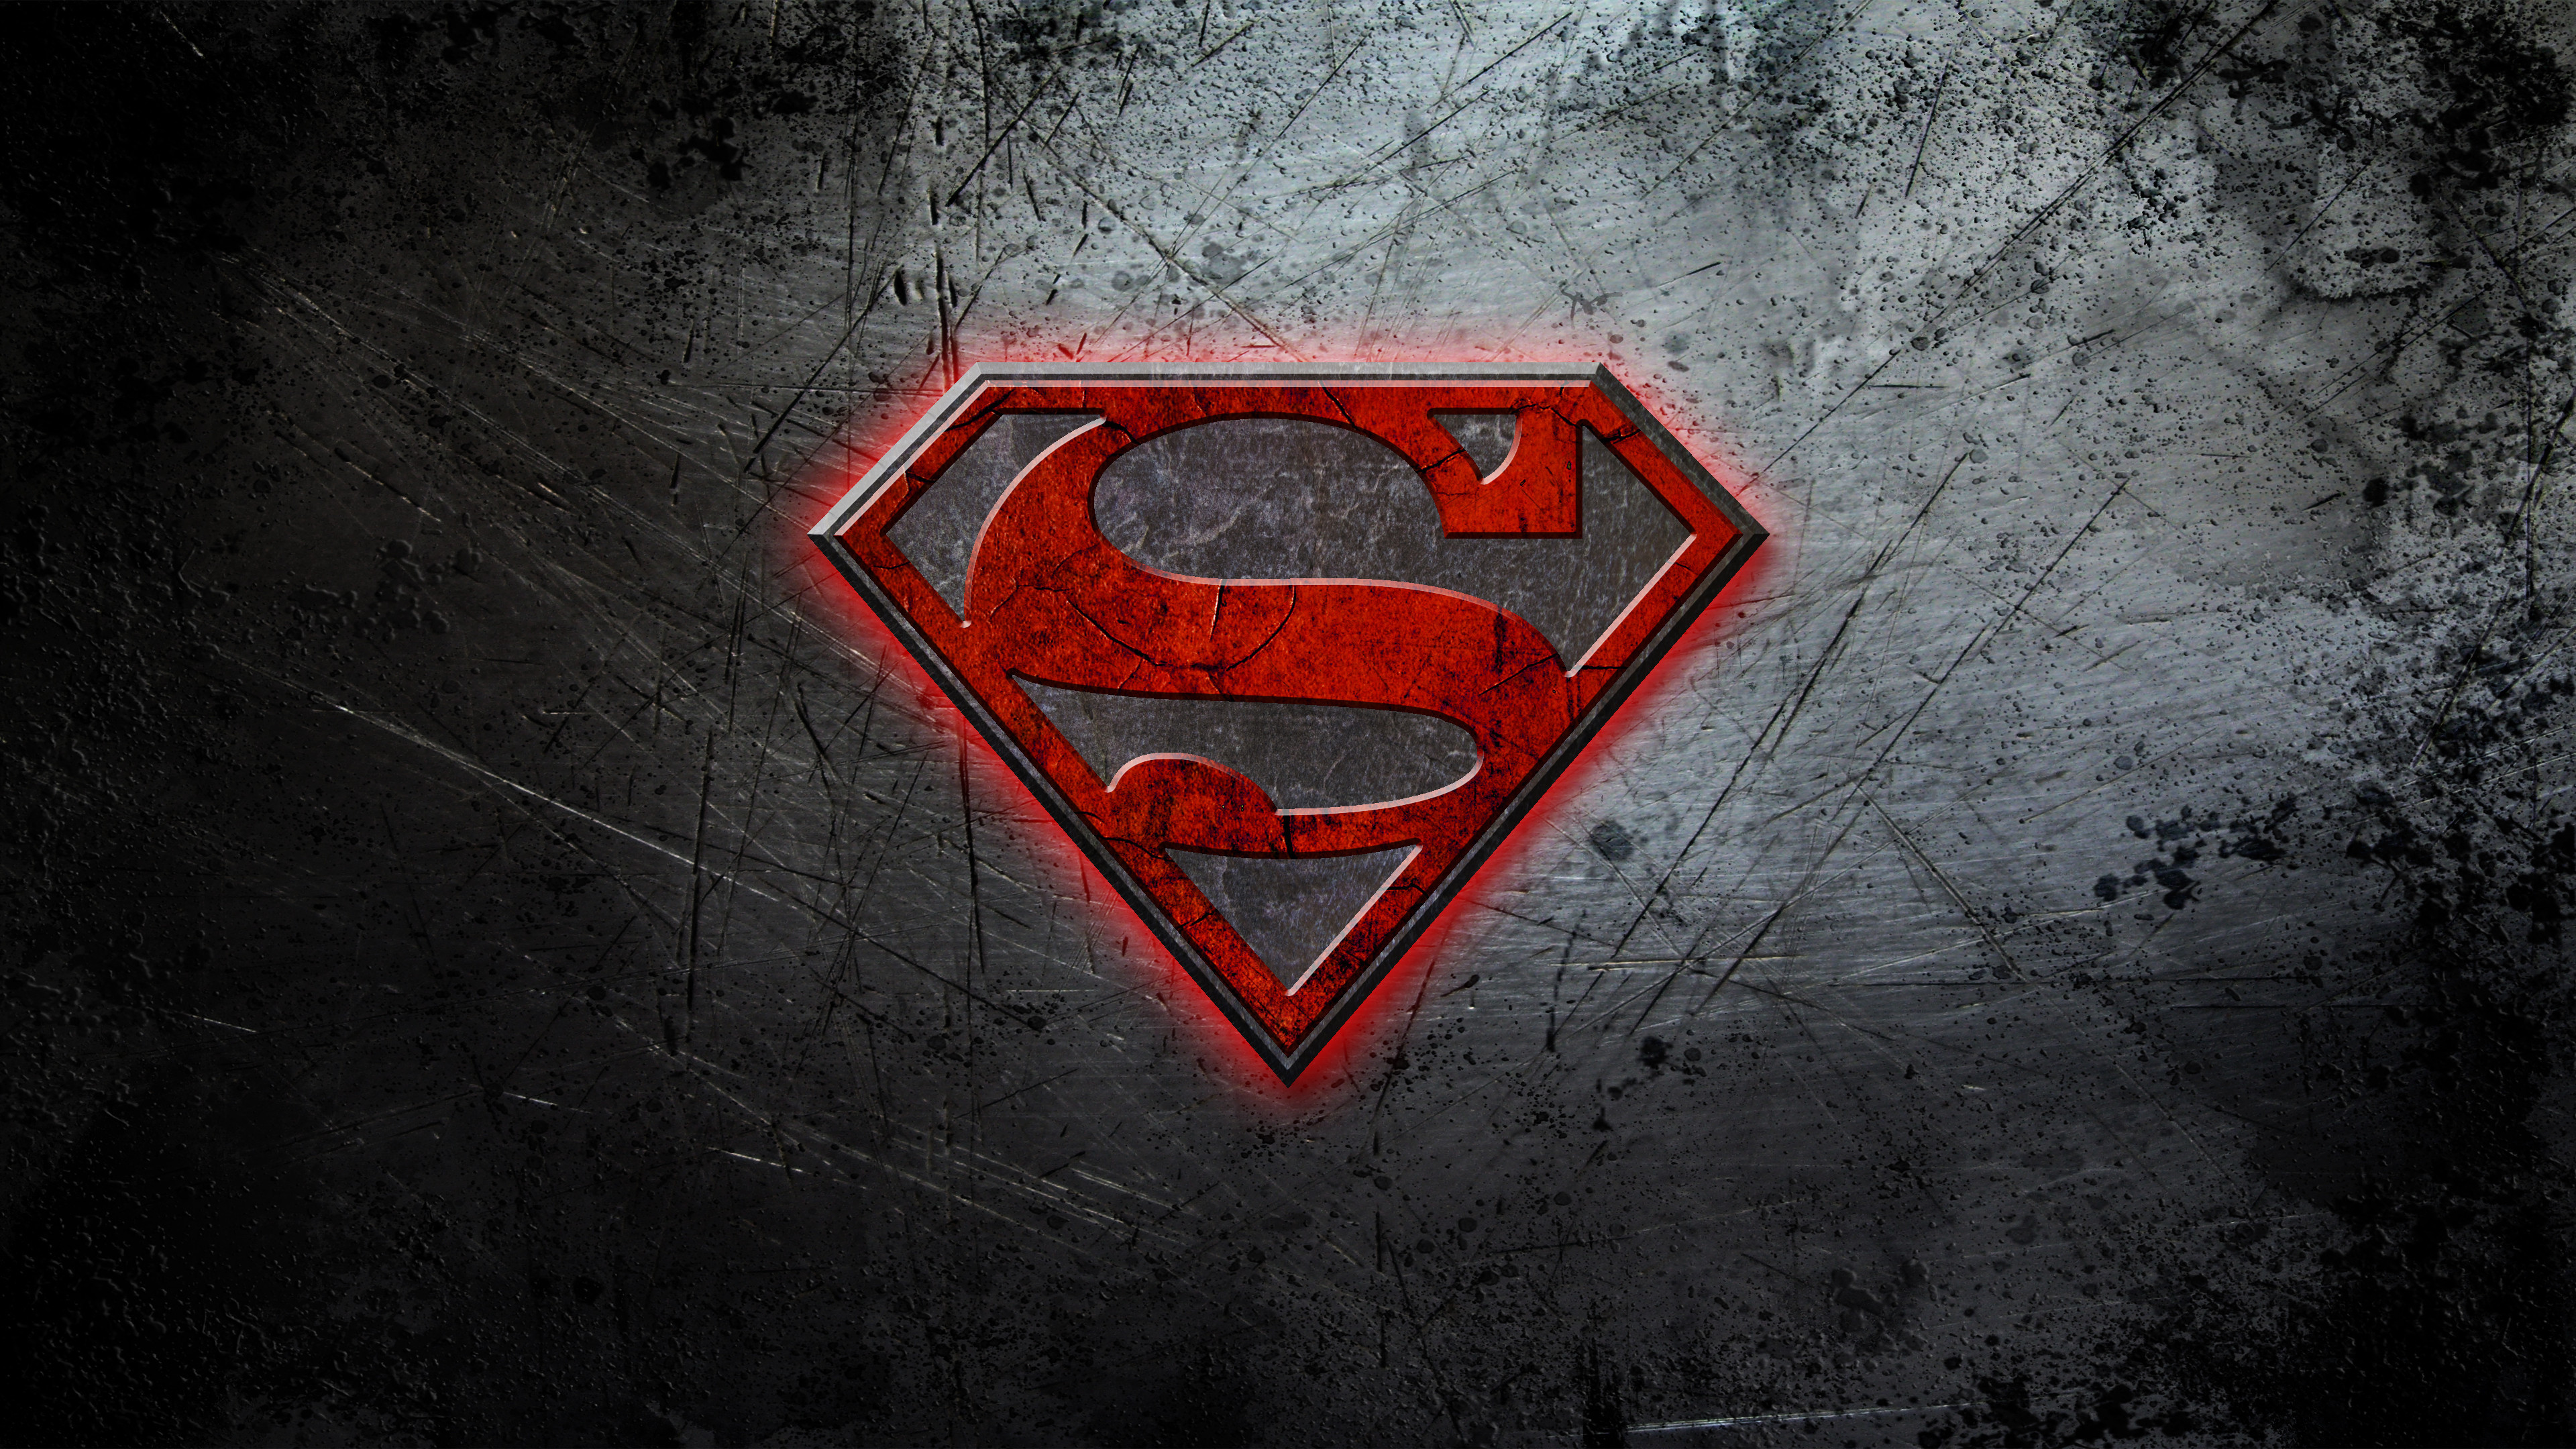 3840x2160 Superman HD Wallpapers for Desktop.